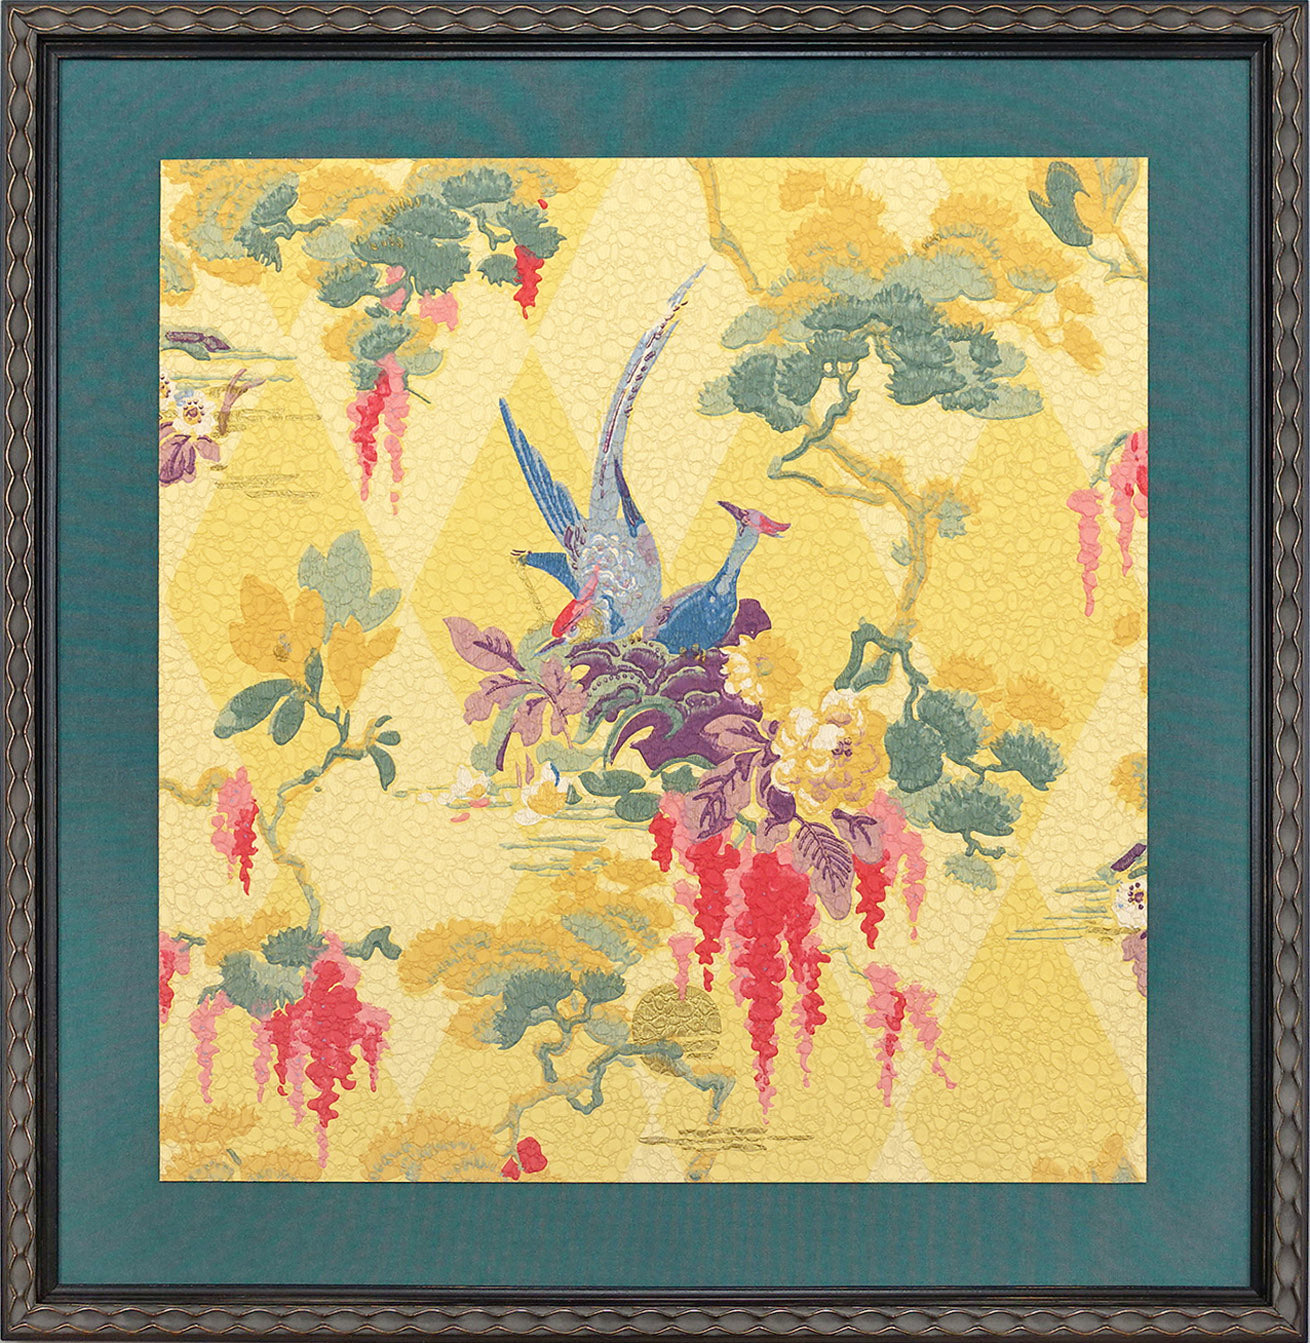 Exotic Birds - Framed Antique Wallpaper Art-Sold